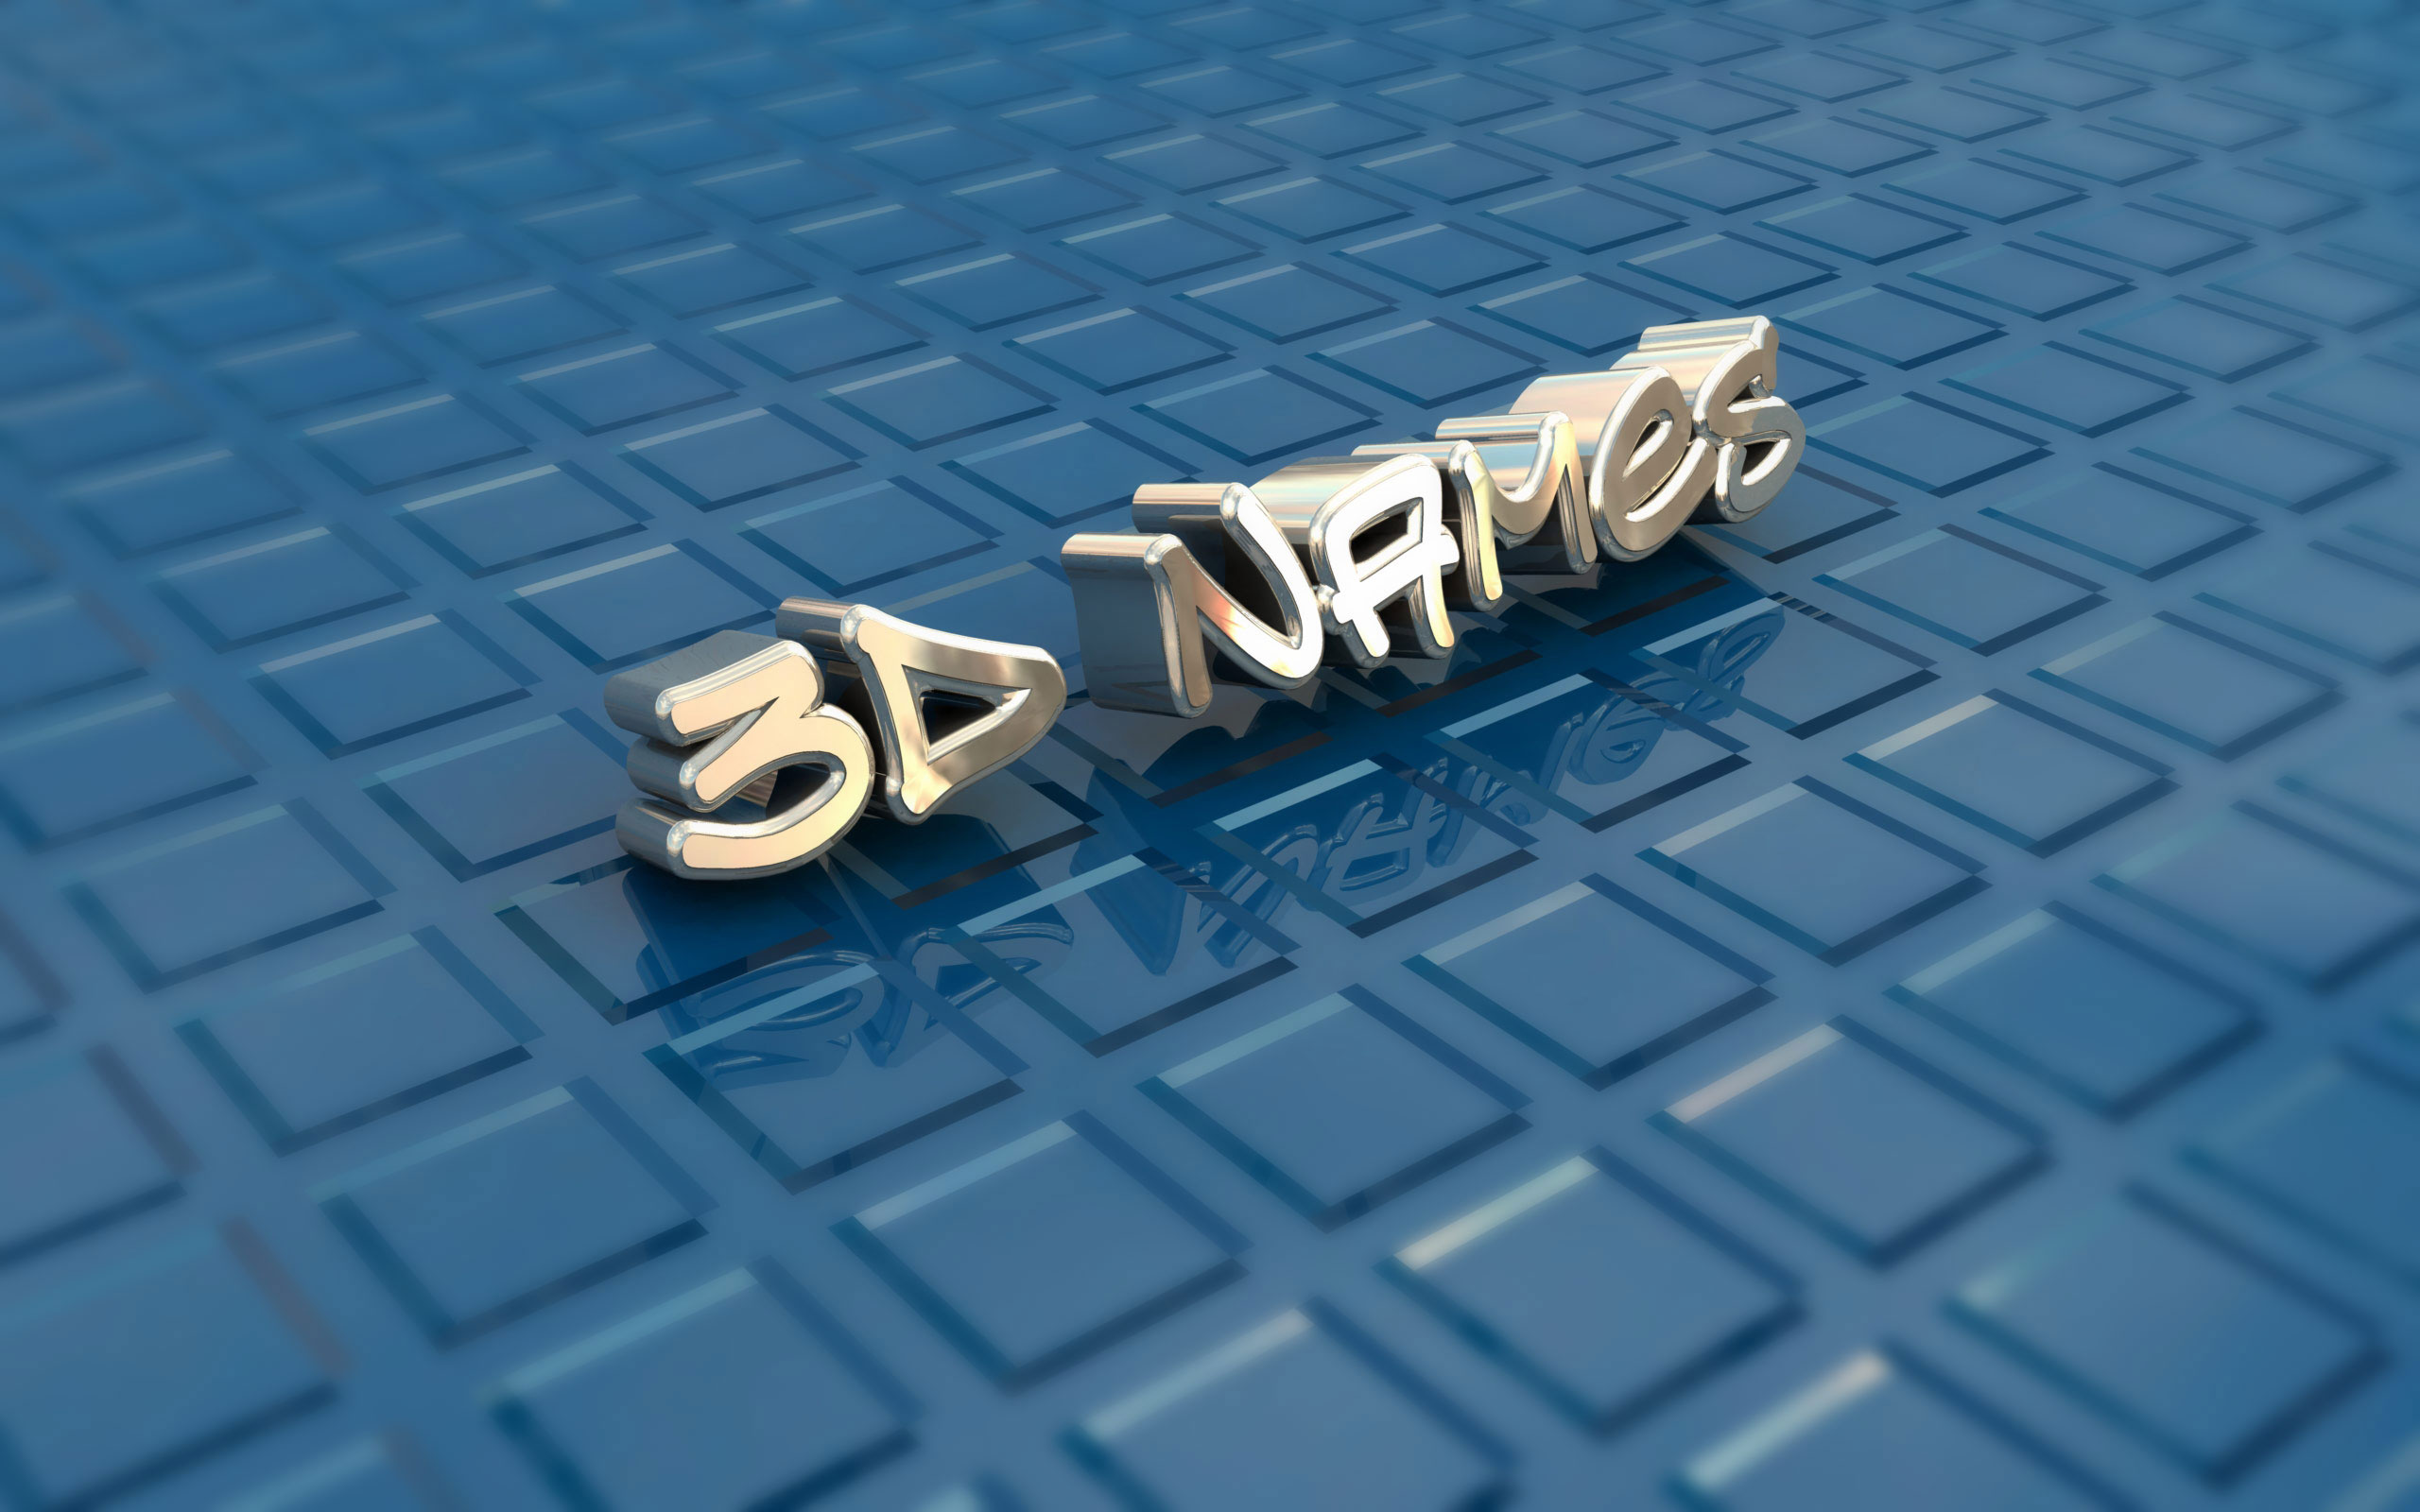 3D Name Wallpaper Software Free Download